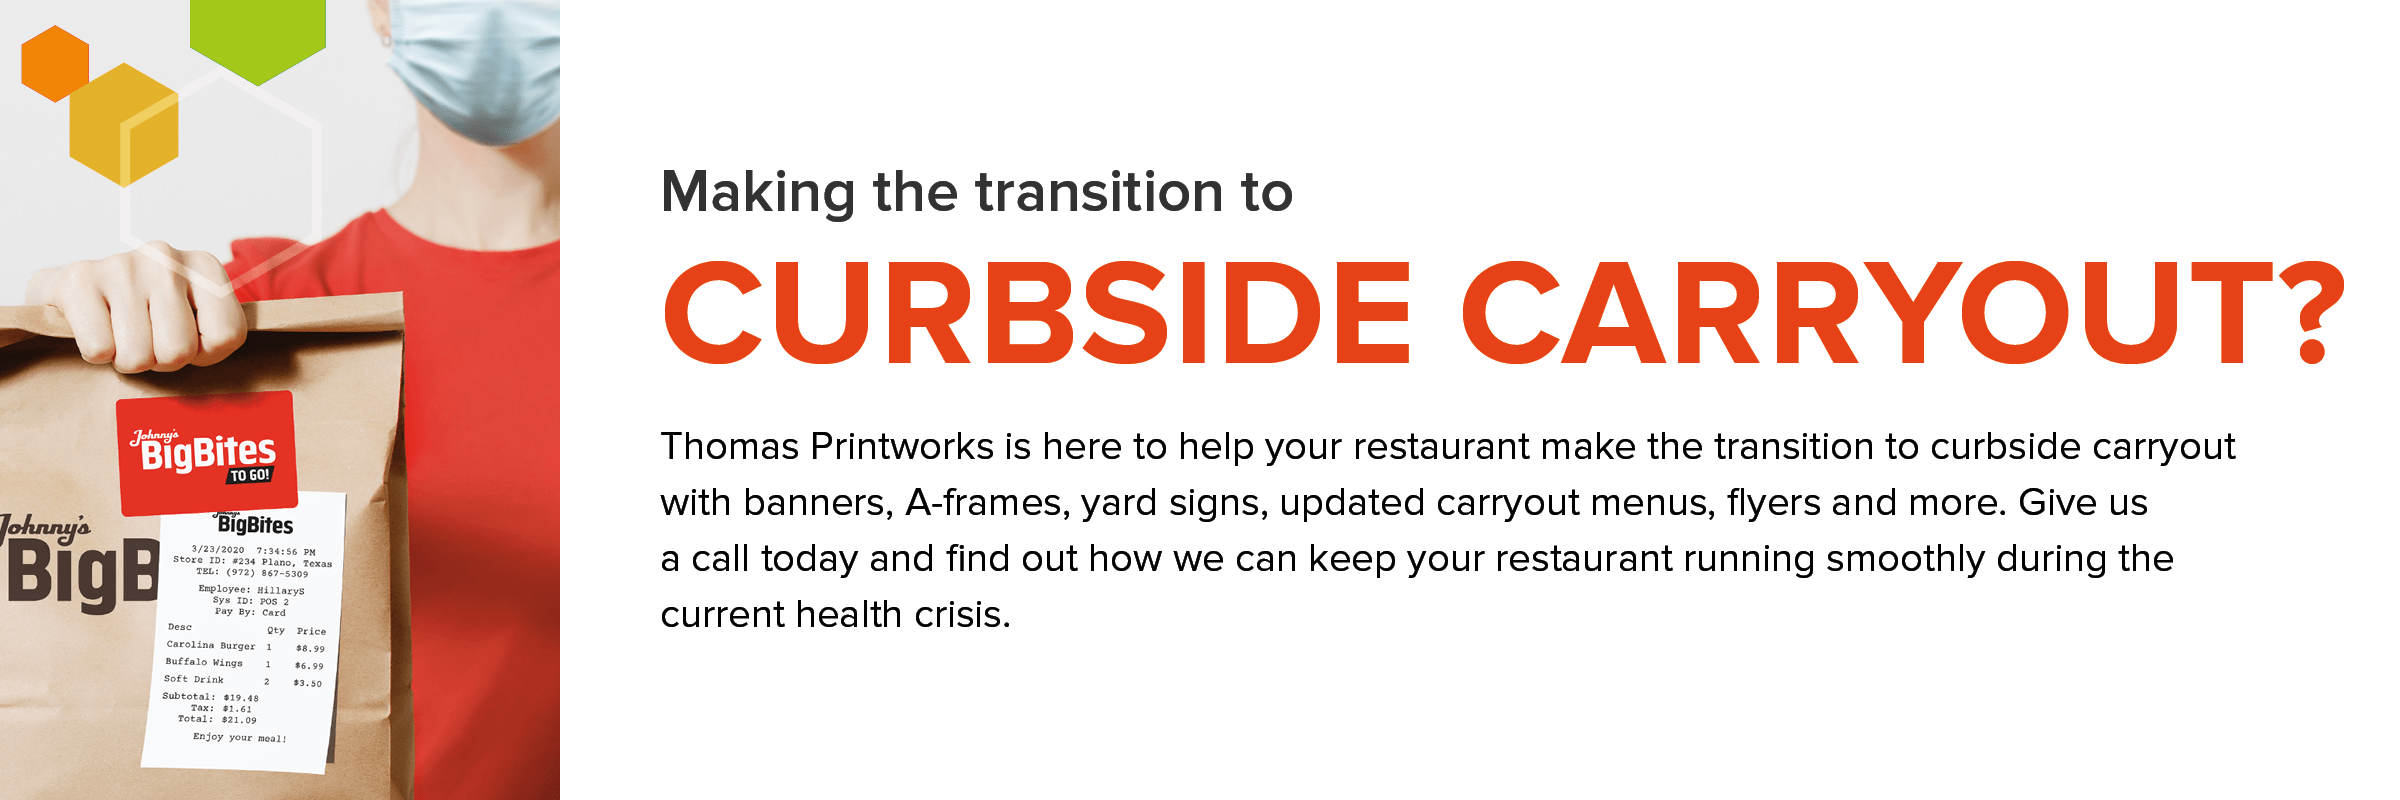 Thomas Printworks can help your restaurant transition to curbside carryout.